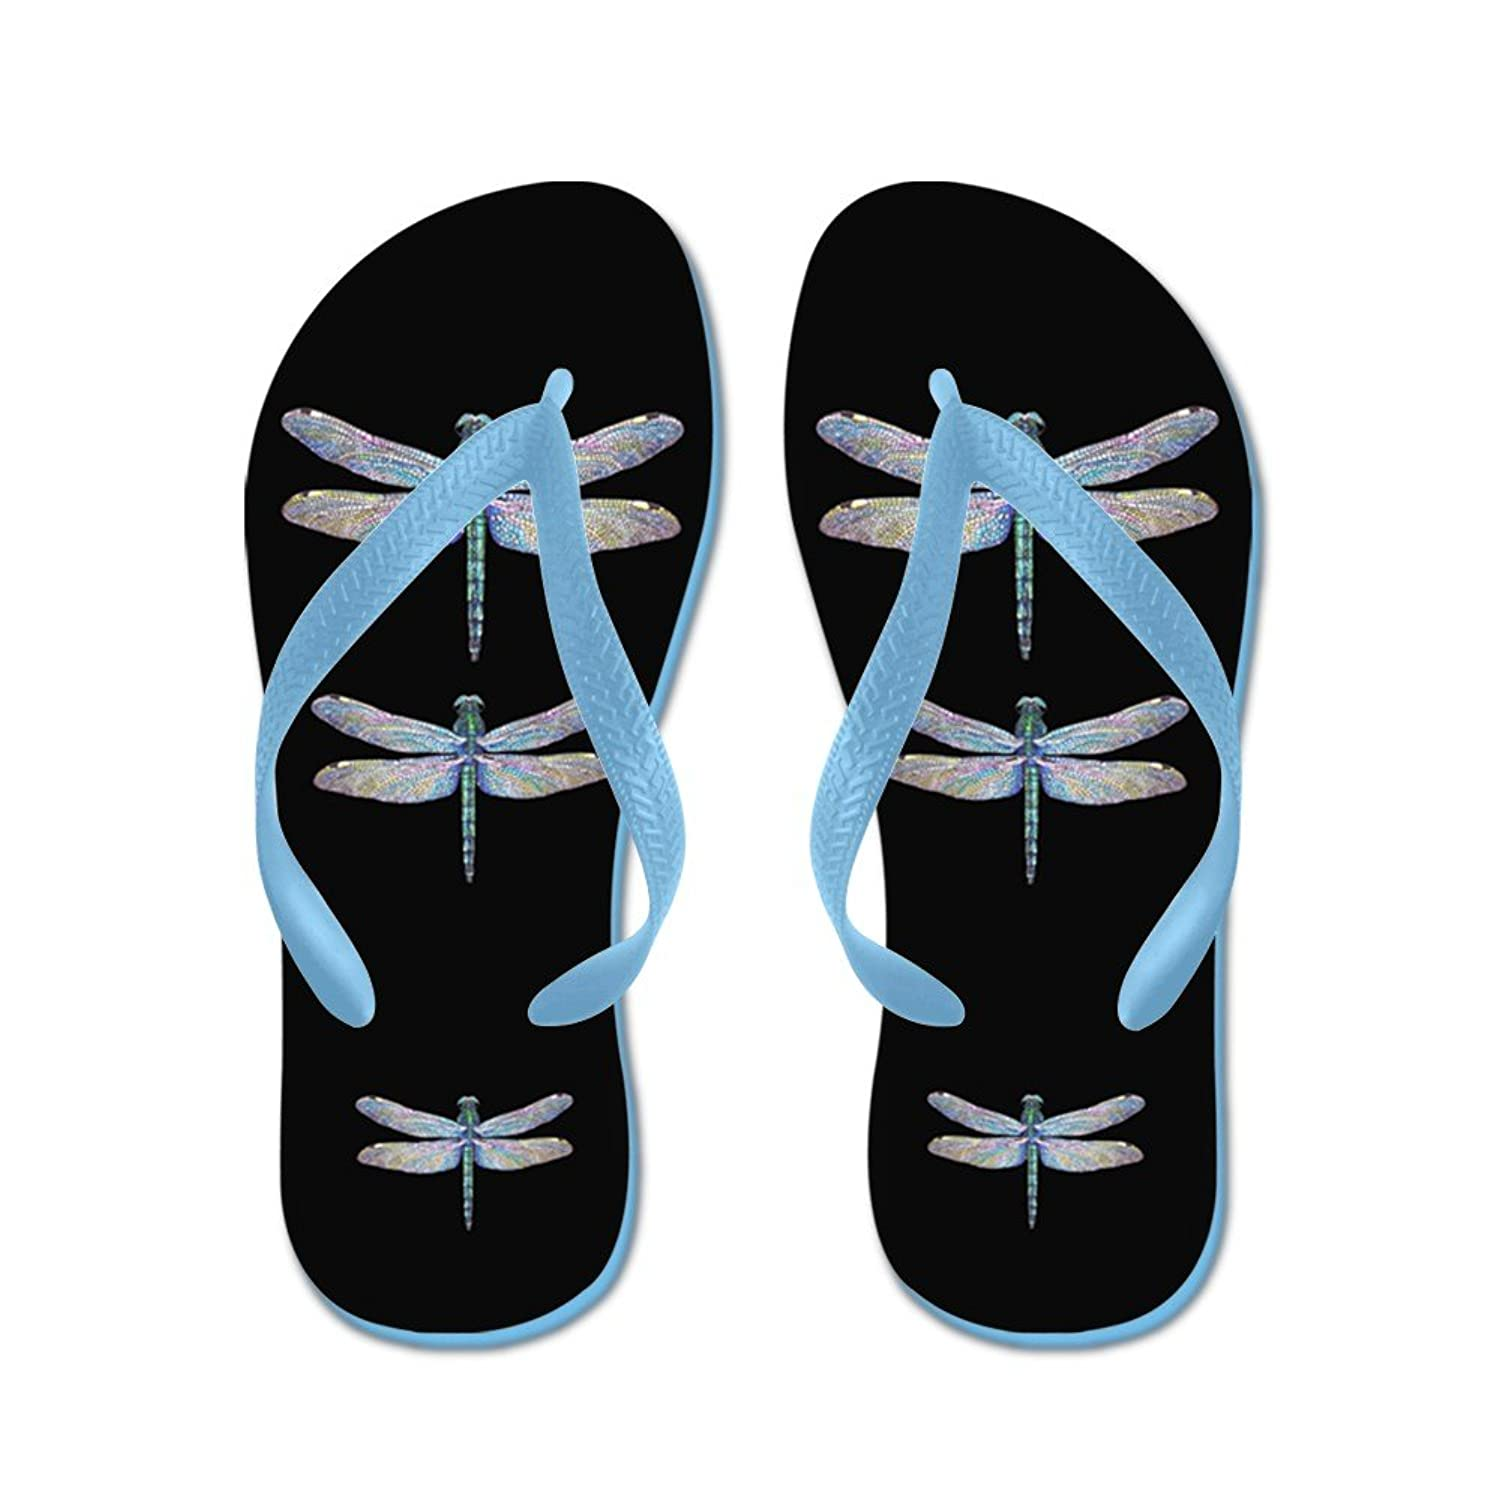 95fde8f91 CafePress Dragonflies On Black - Flip Flops